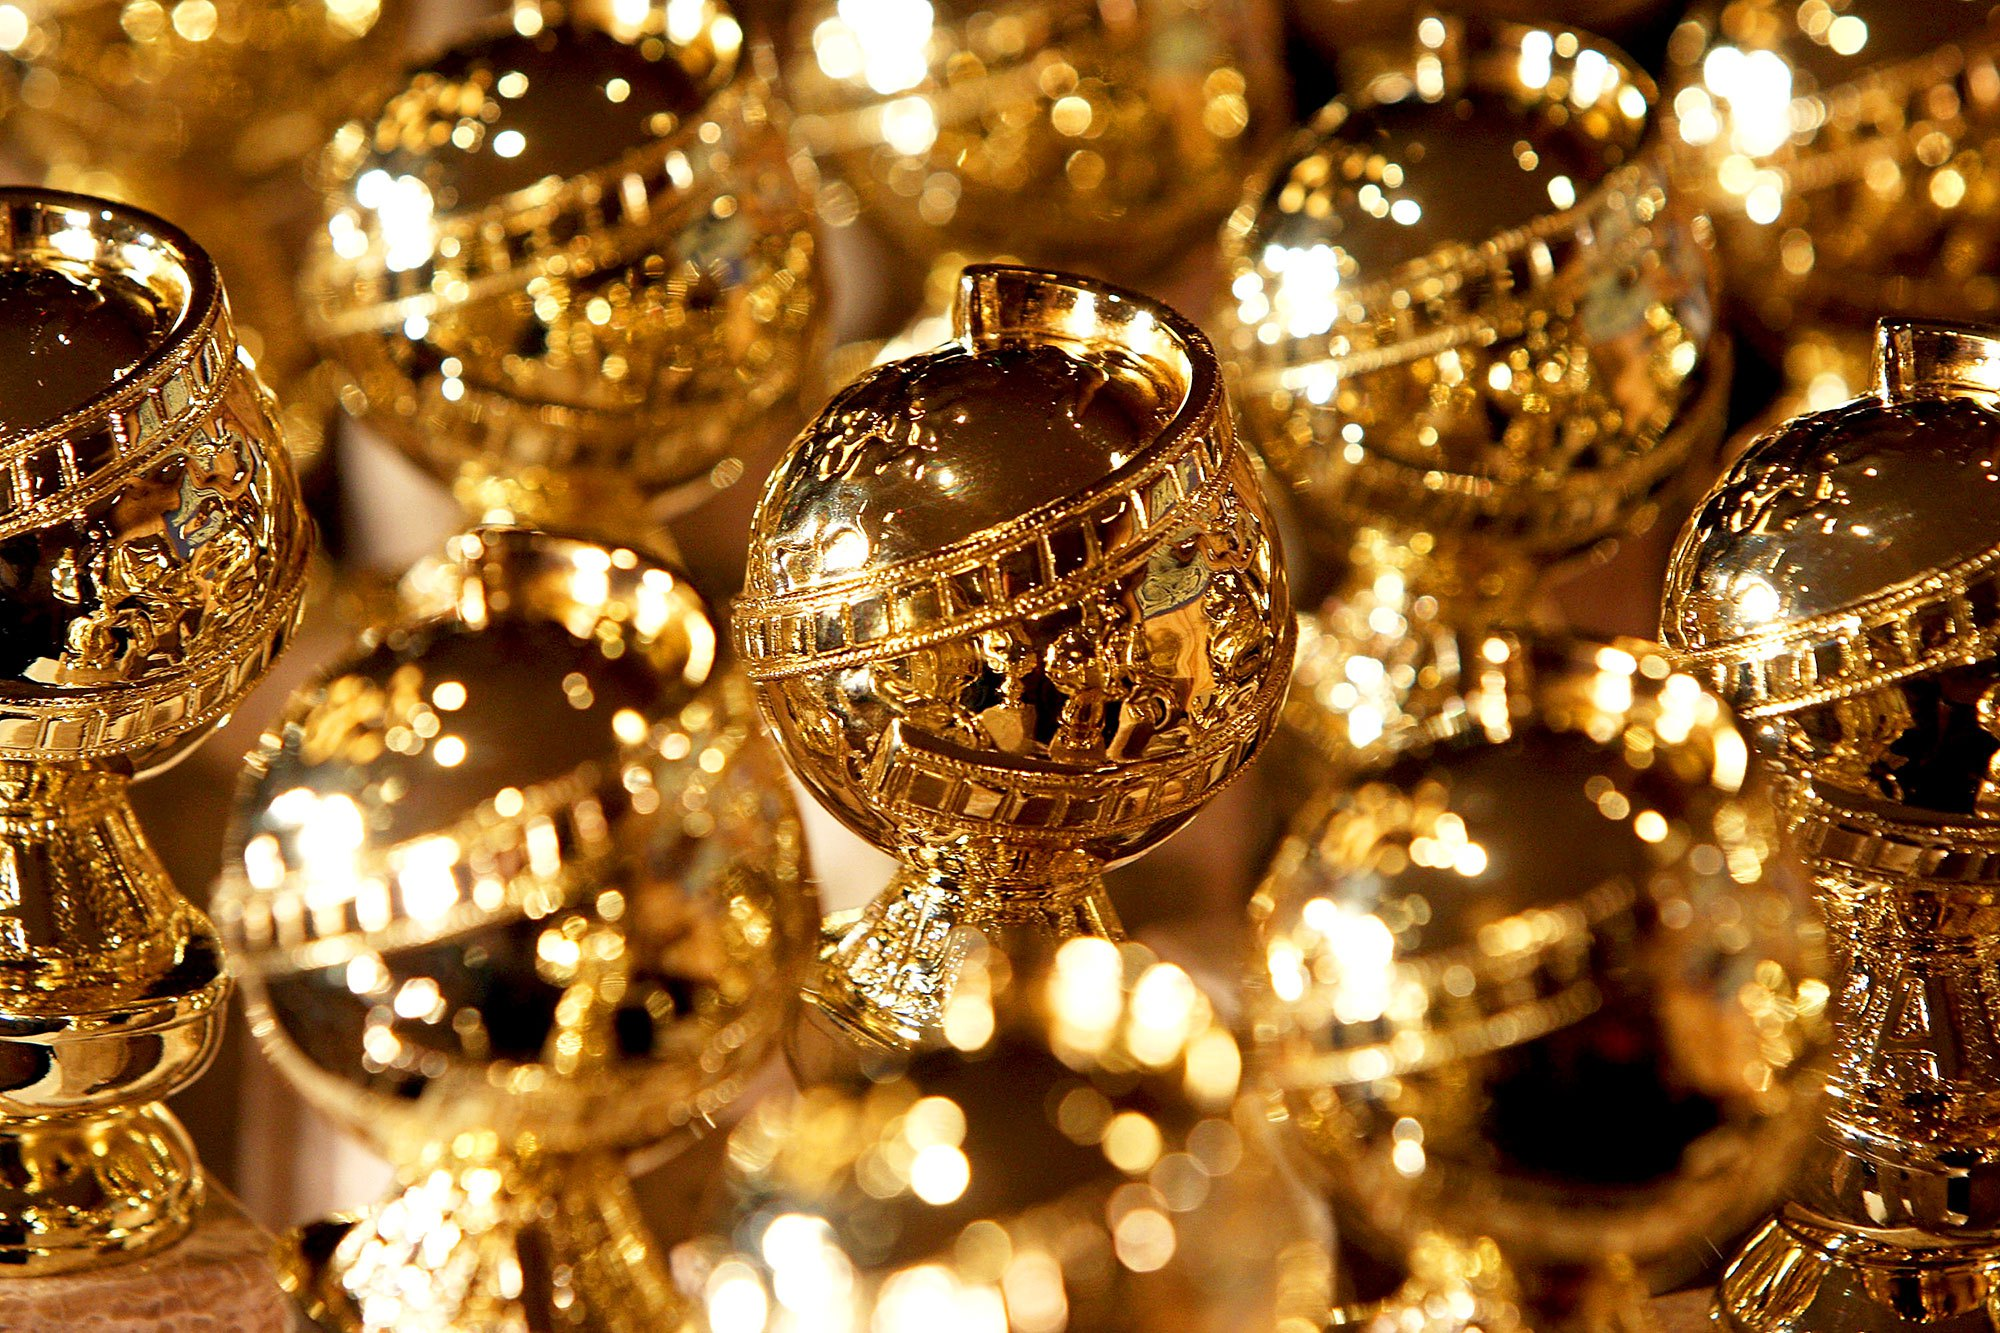 Golden Globe statuettes during an unveiling by the Hollywood Foreign Press Association at the Beverly Hilton Hotel in Beverly Hills, California.